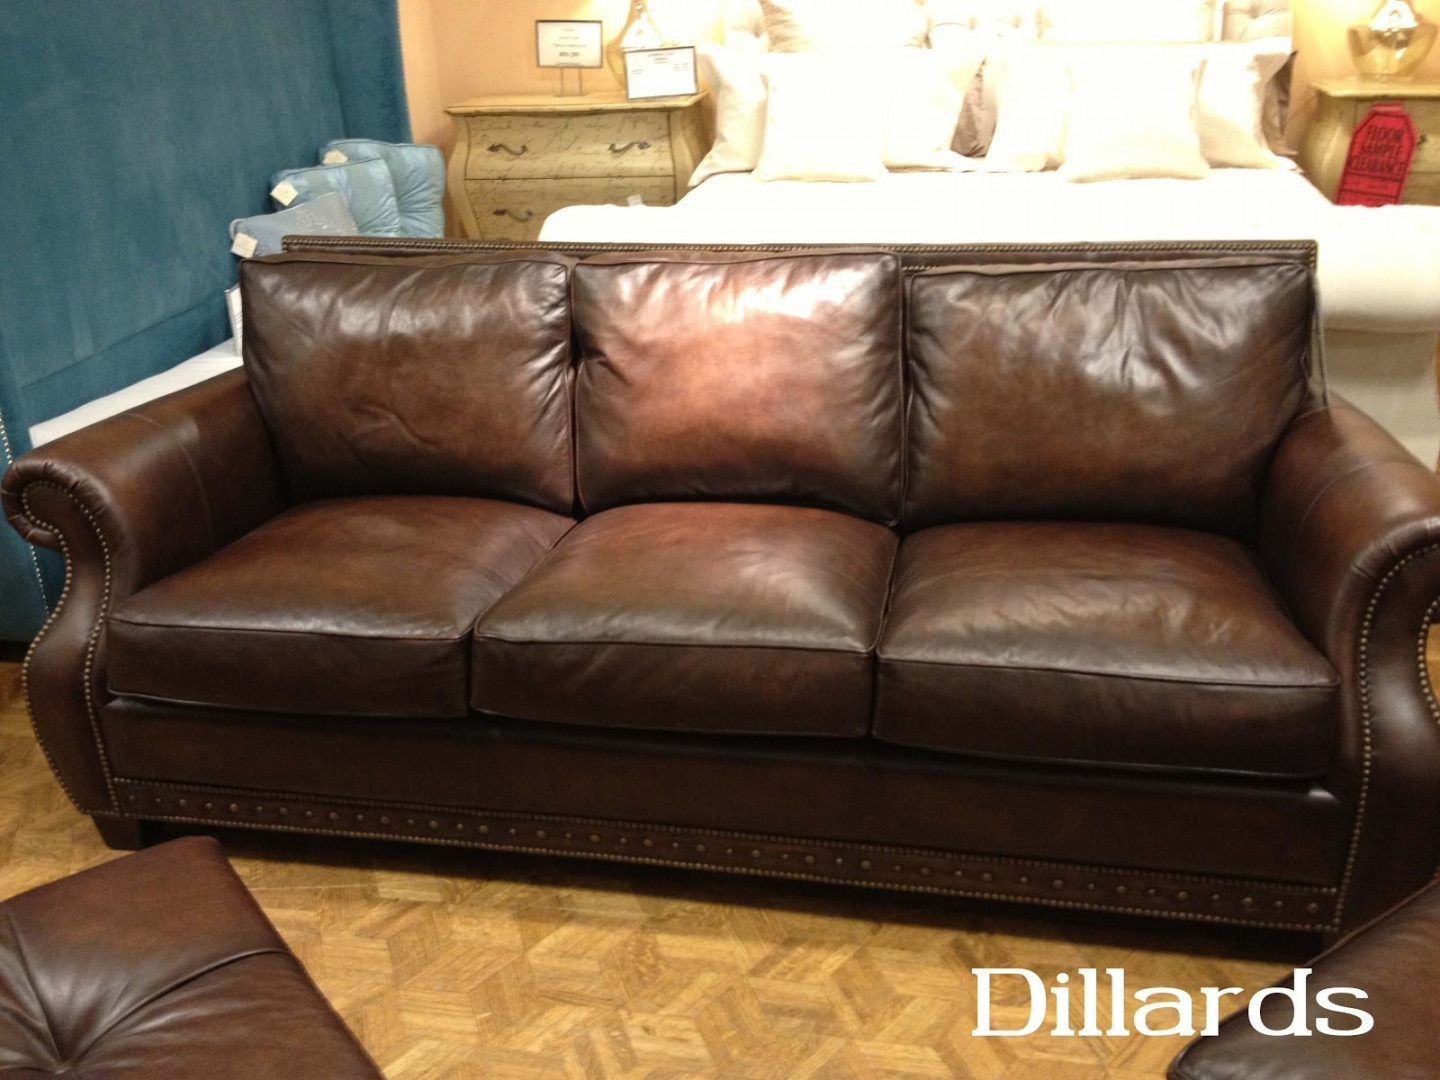 Gentil Leather Sofa Dillards Pertaining To Dillards Sectional Sofas (Photo 3 Of 10)